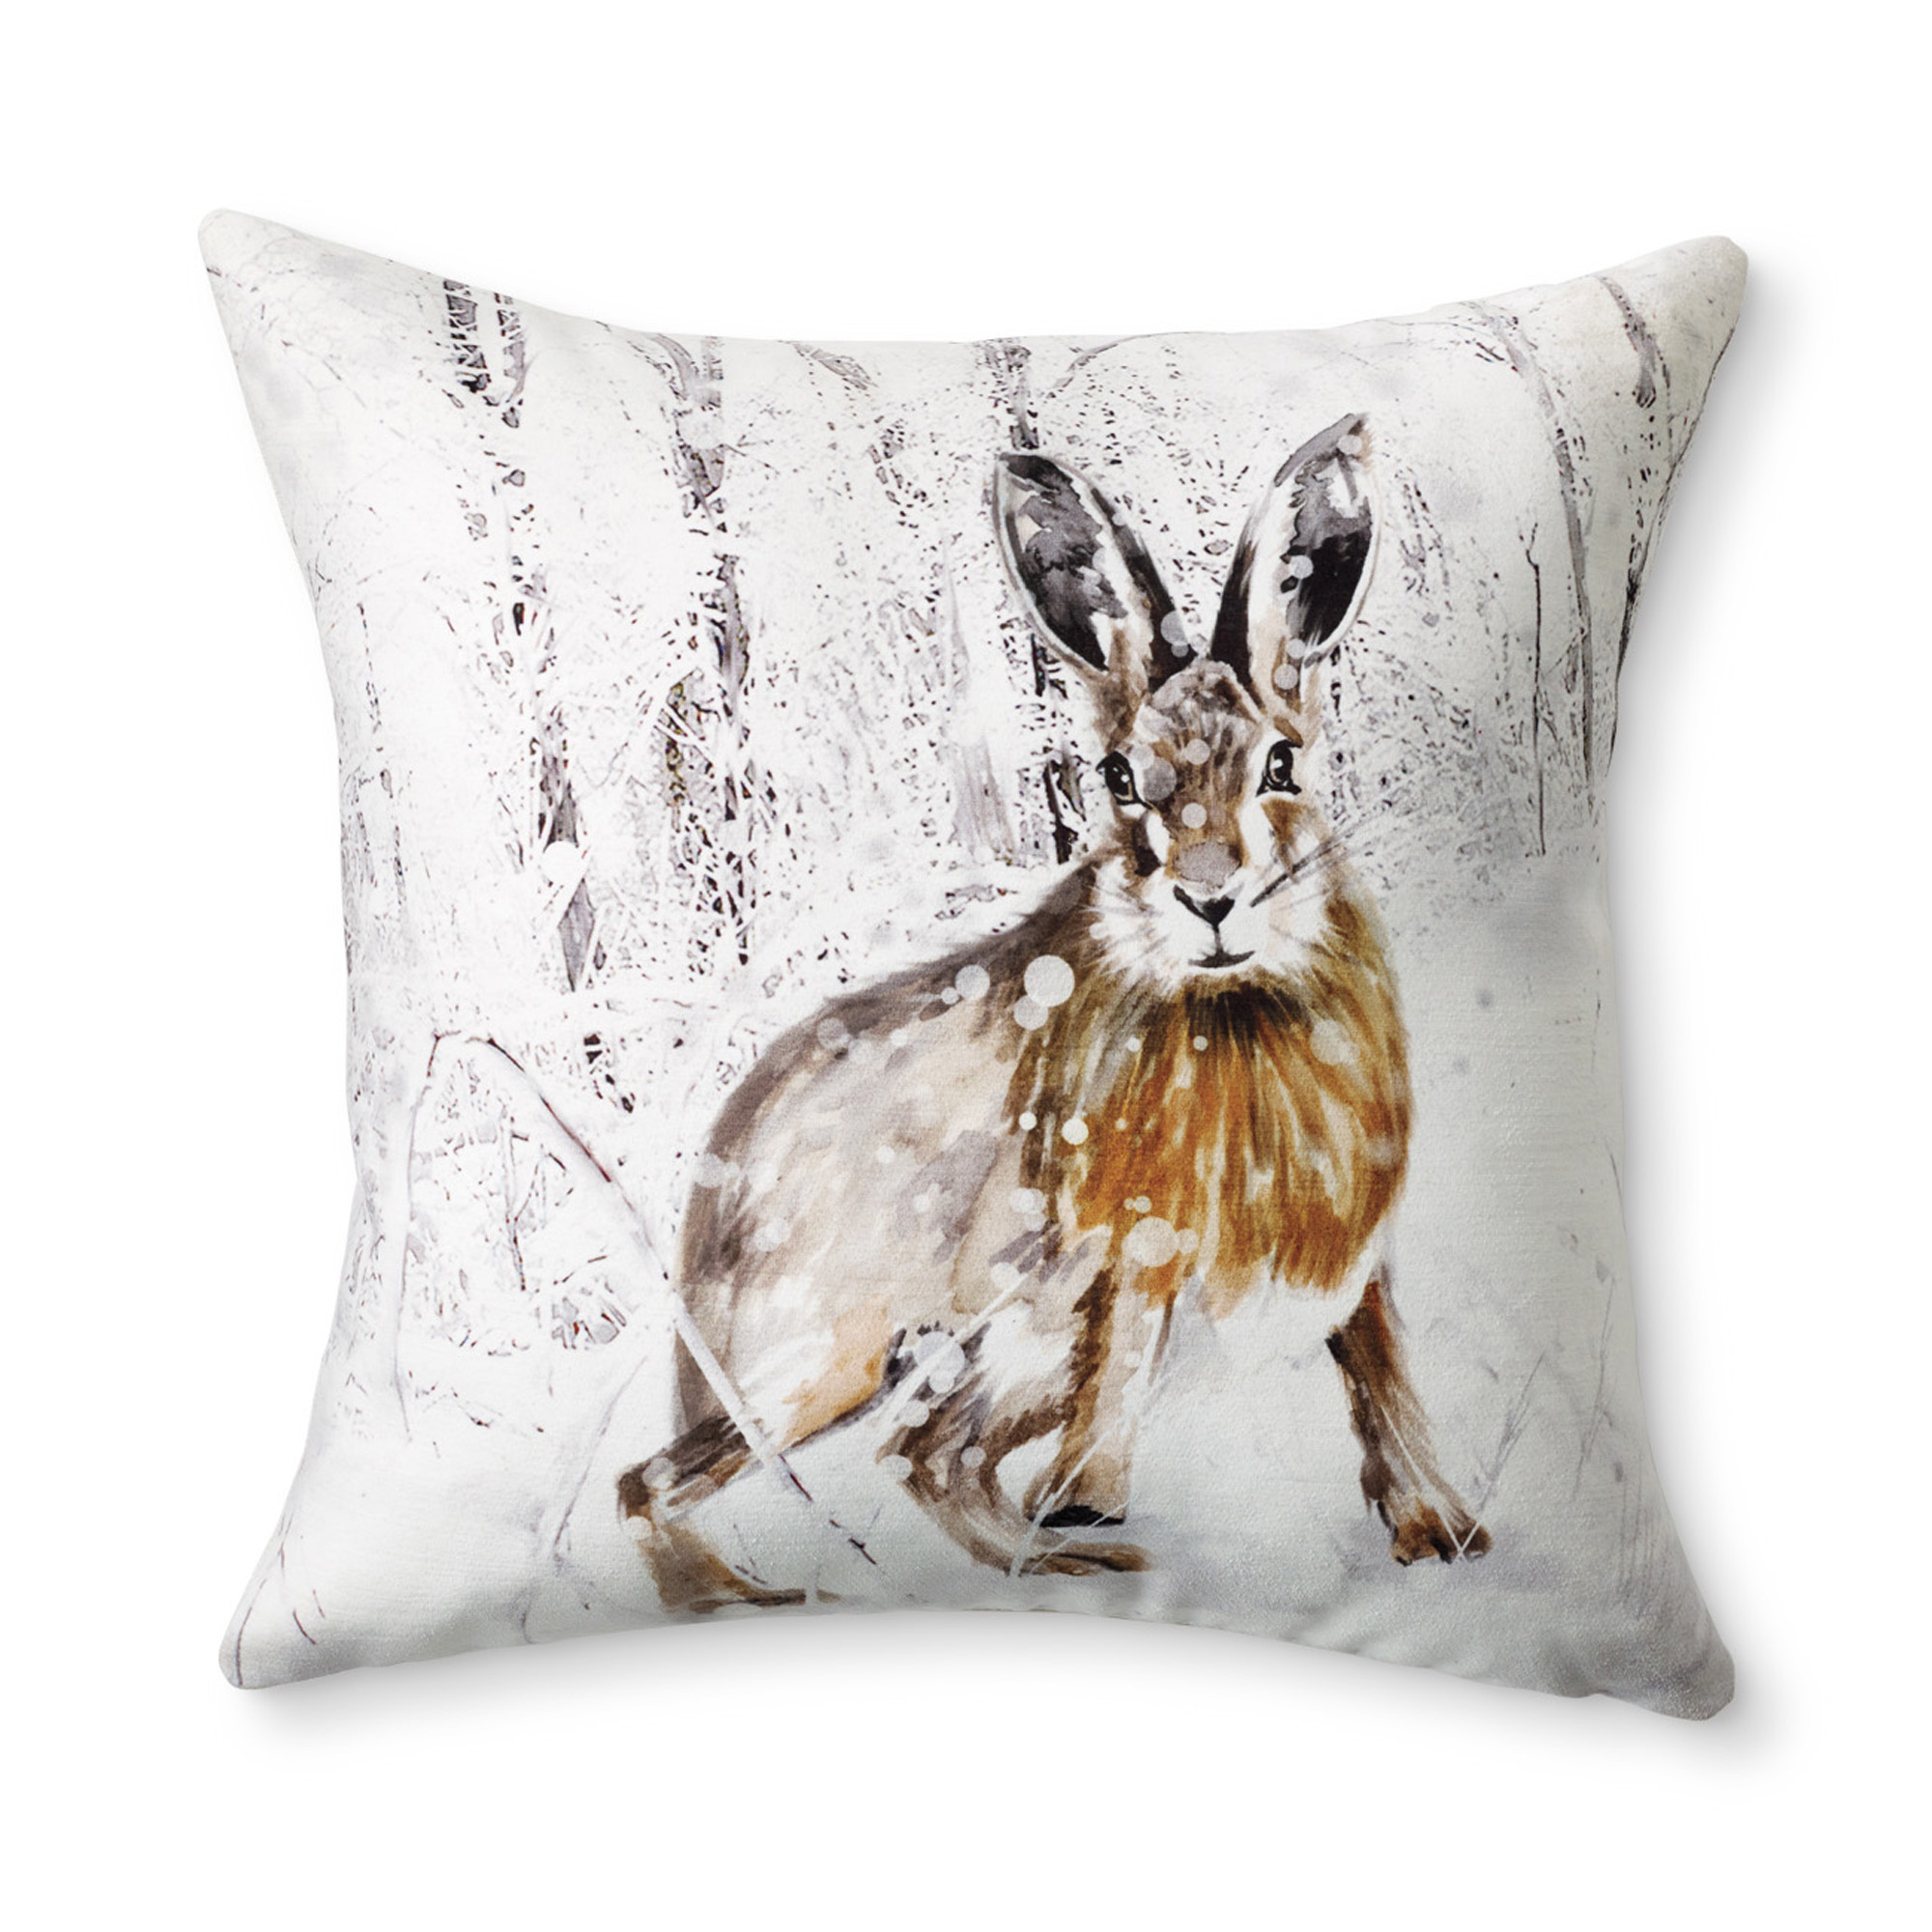 Snowy Woods Snow Bunny Pillow